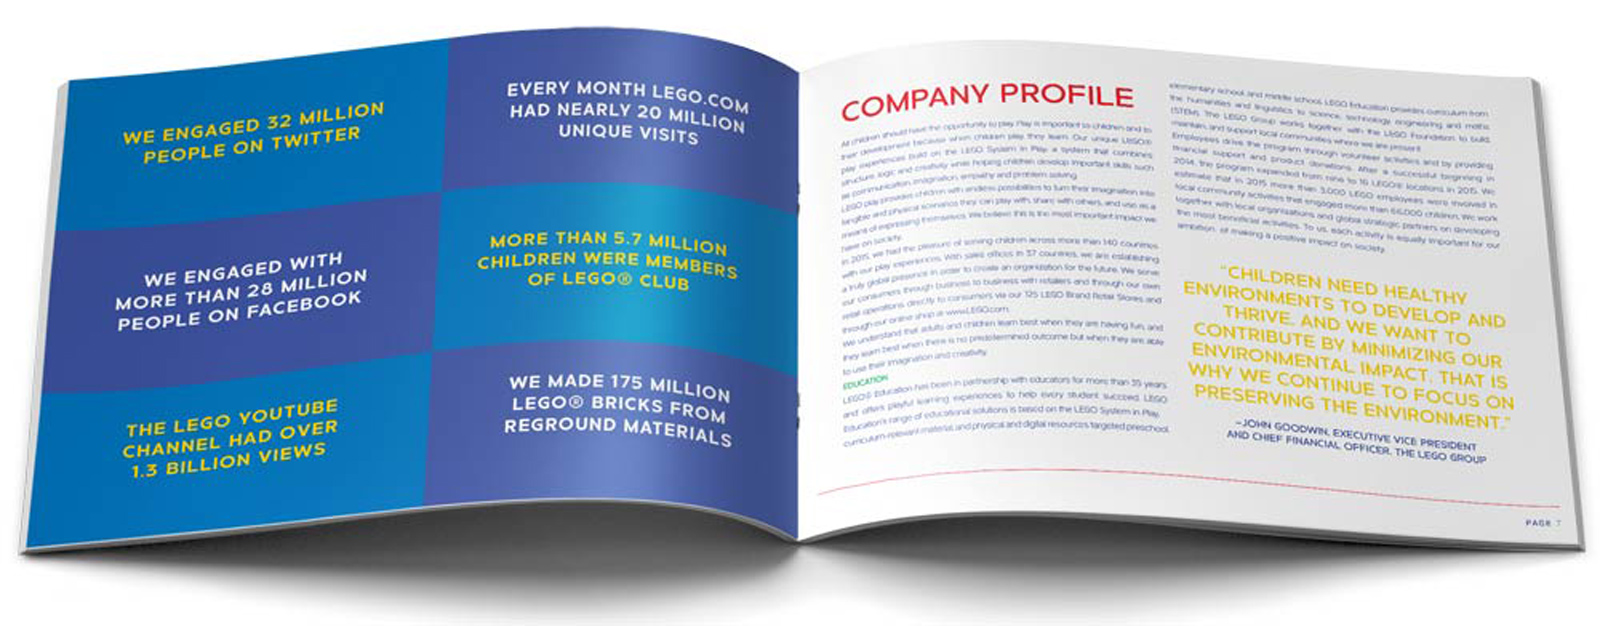 Lego Annual Report Profile Pages